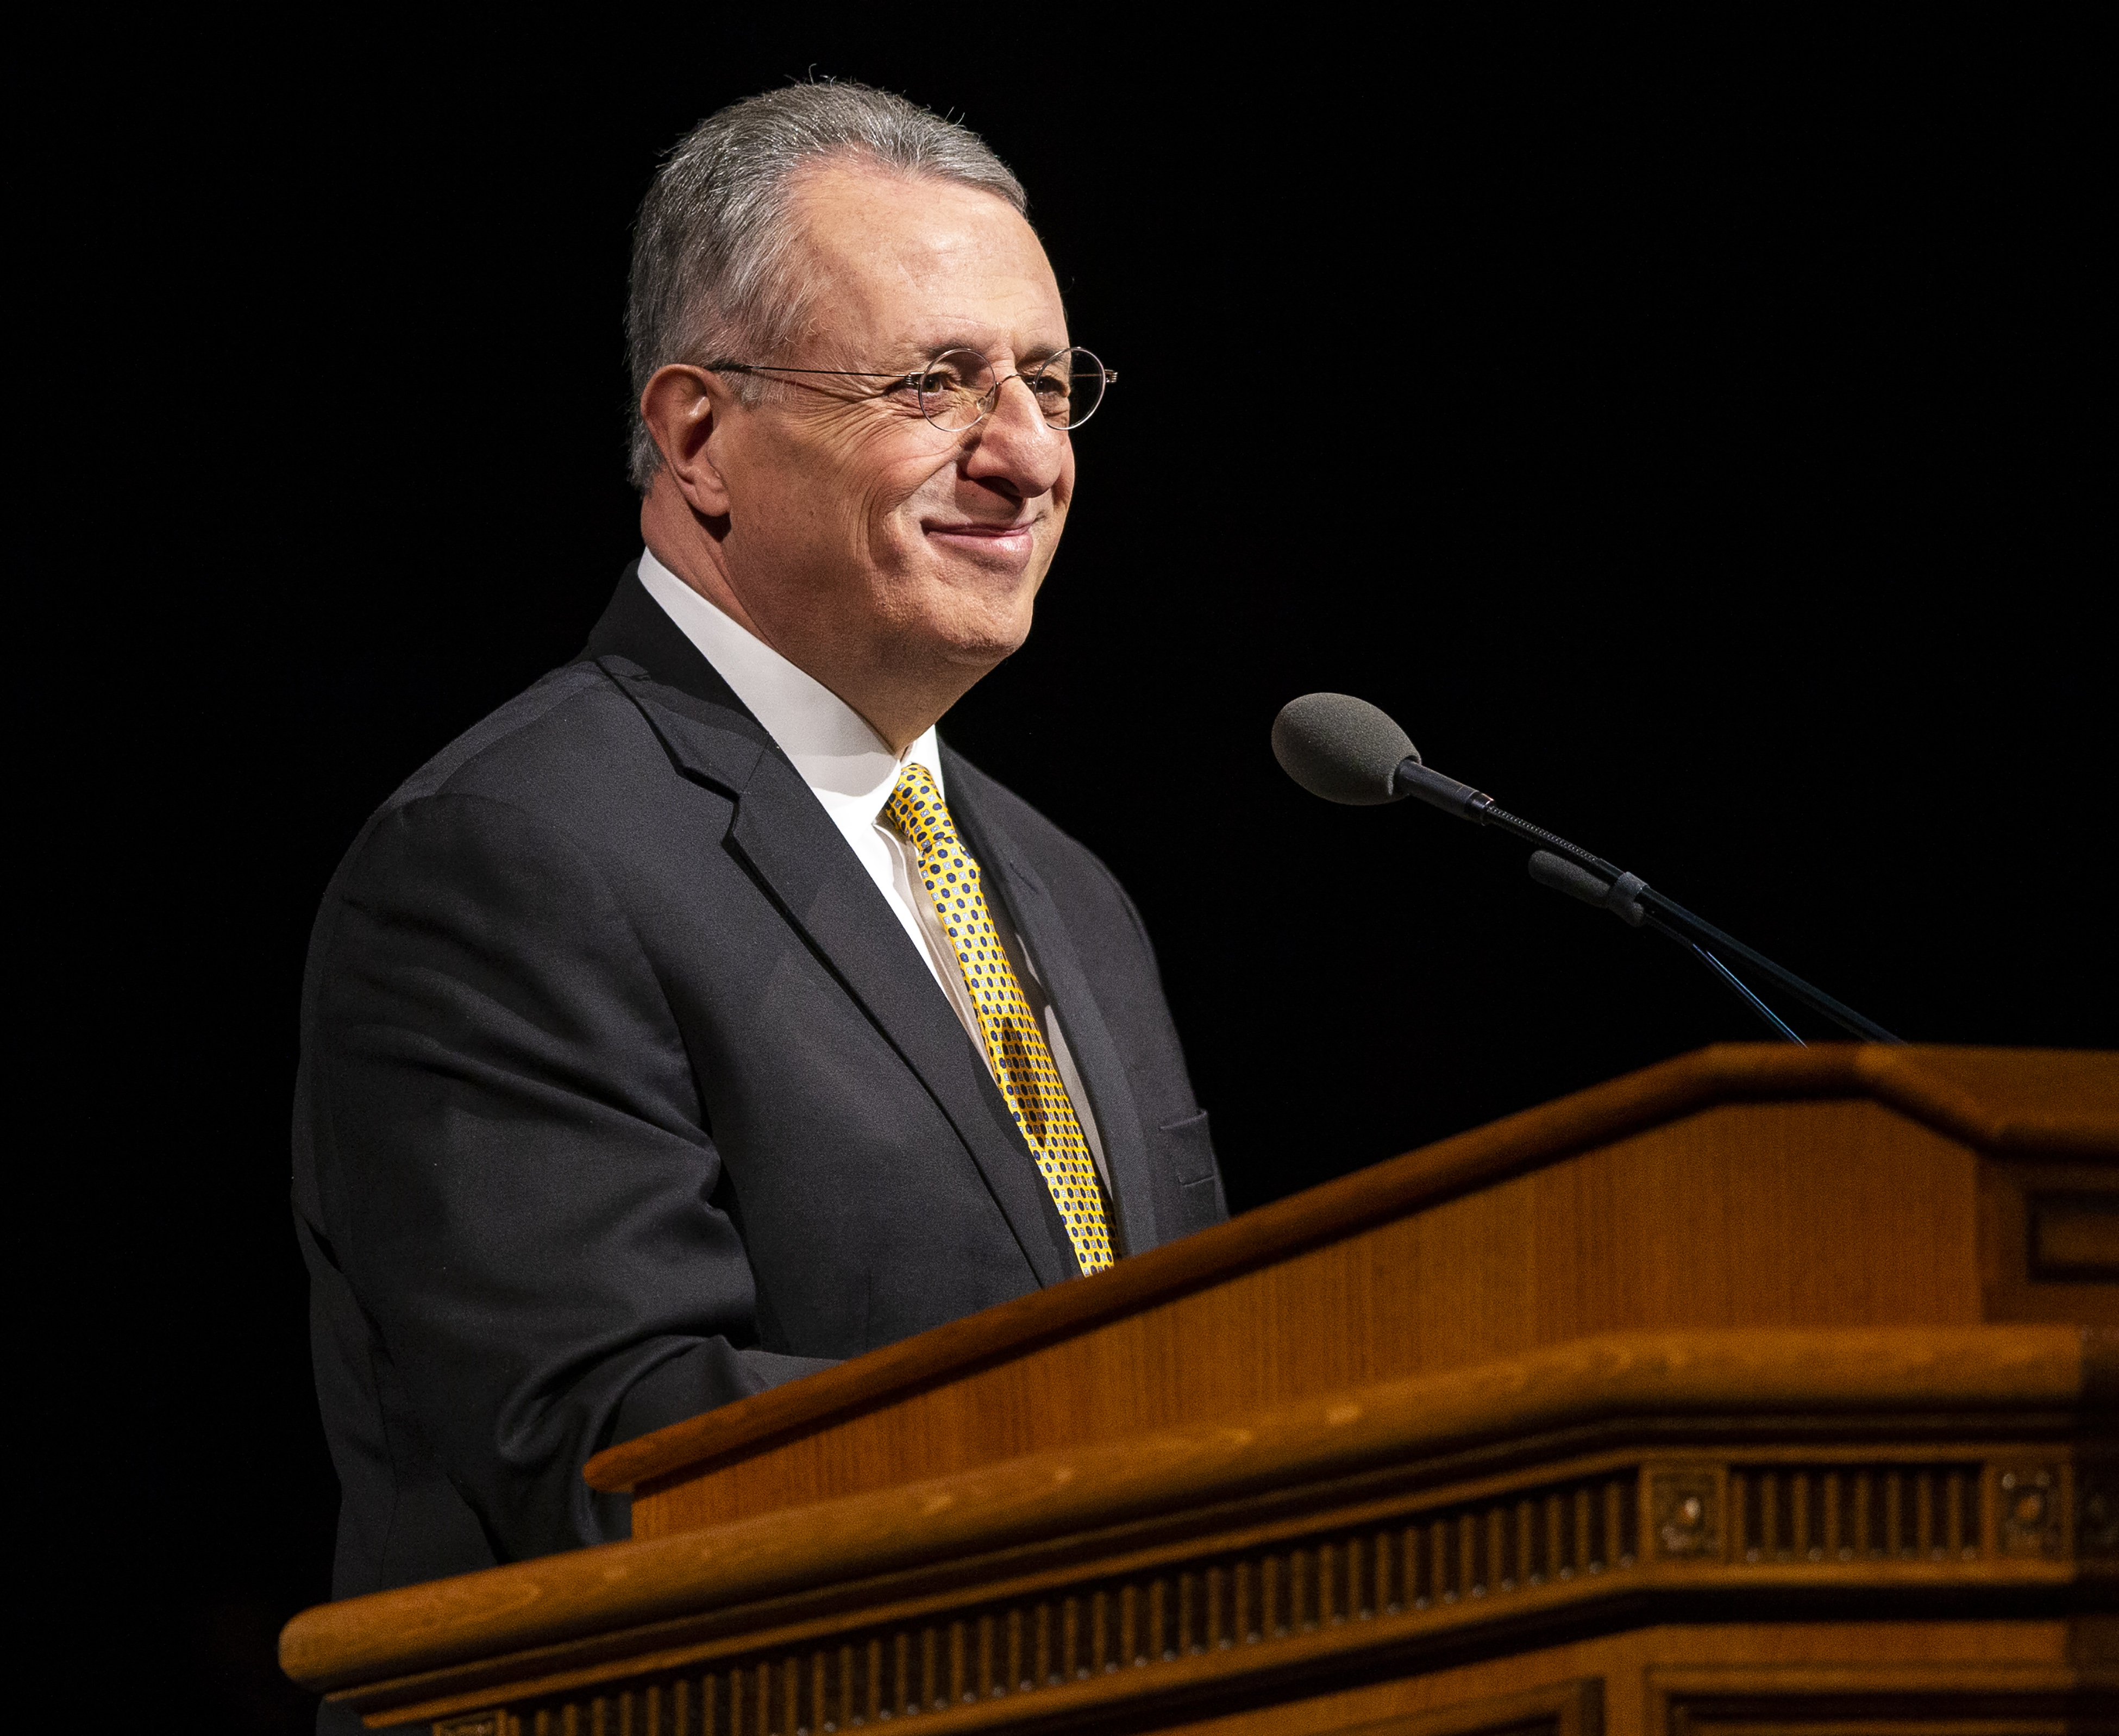 Elder Ulisses Soares of the Quorum of the Twelve Apostles of The Church of Jesus Christ of Latter-day Saints speaks at a devotional at BYU in Provo on Tuesday, Feb. 5, 2019.